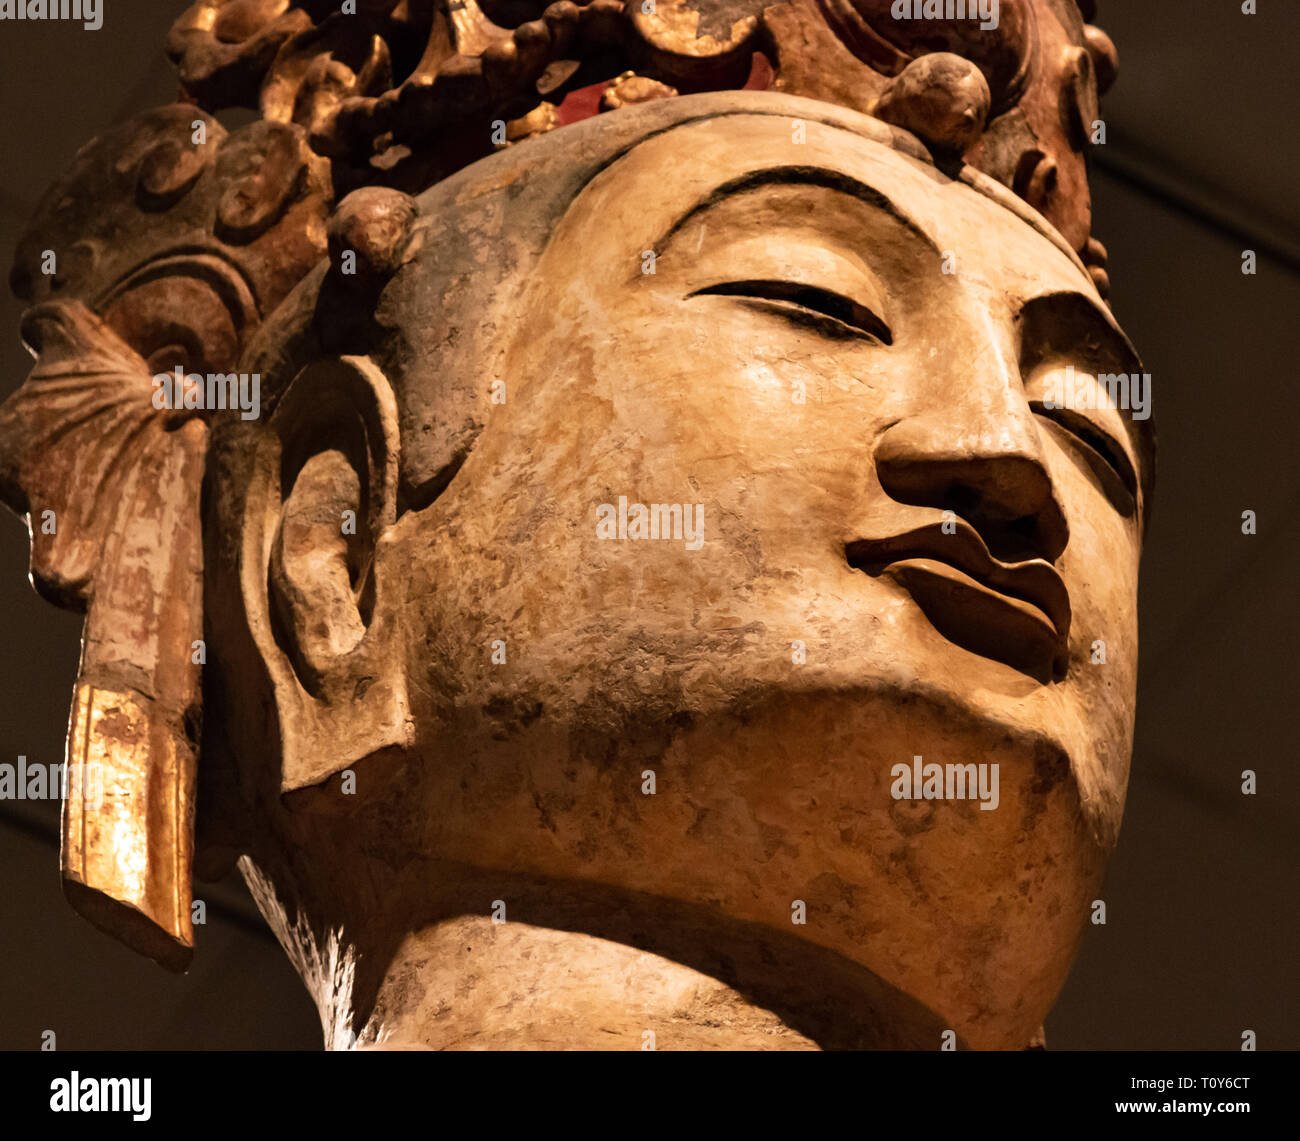 A close up of the face of a giant Buddha on display at the Metropolitan Museum of Art in New York City. - Stock Image